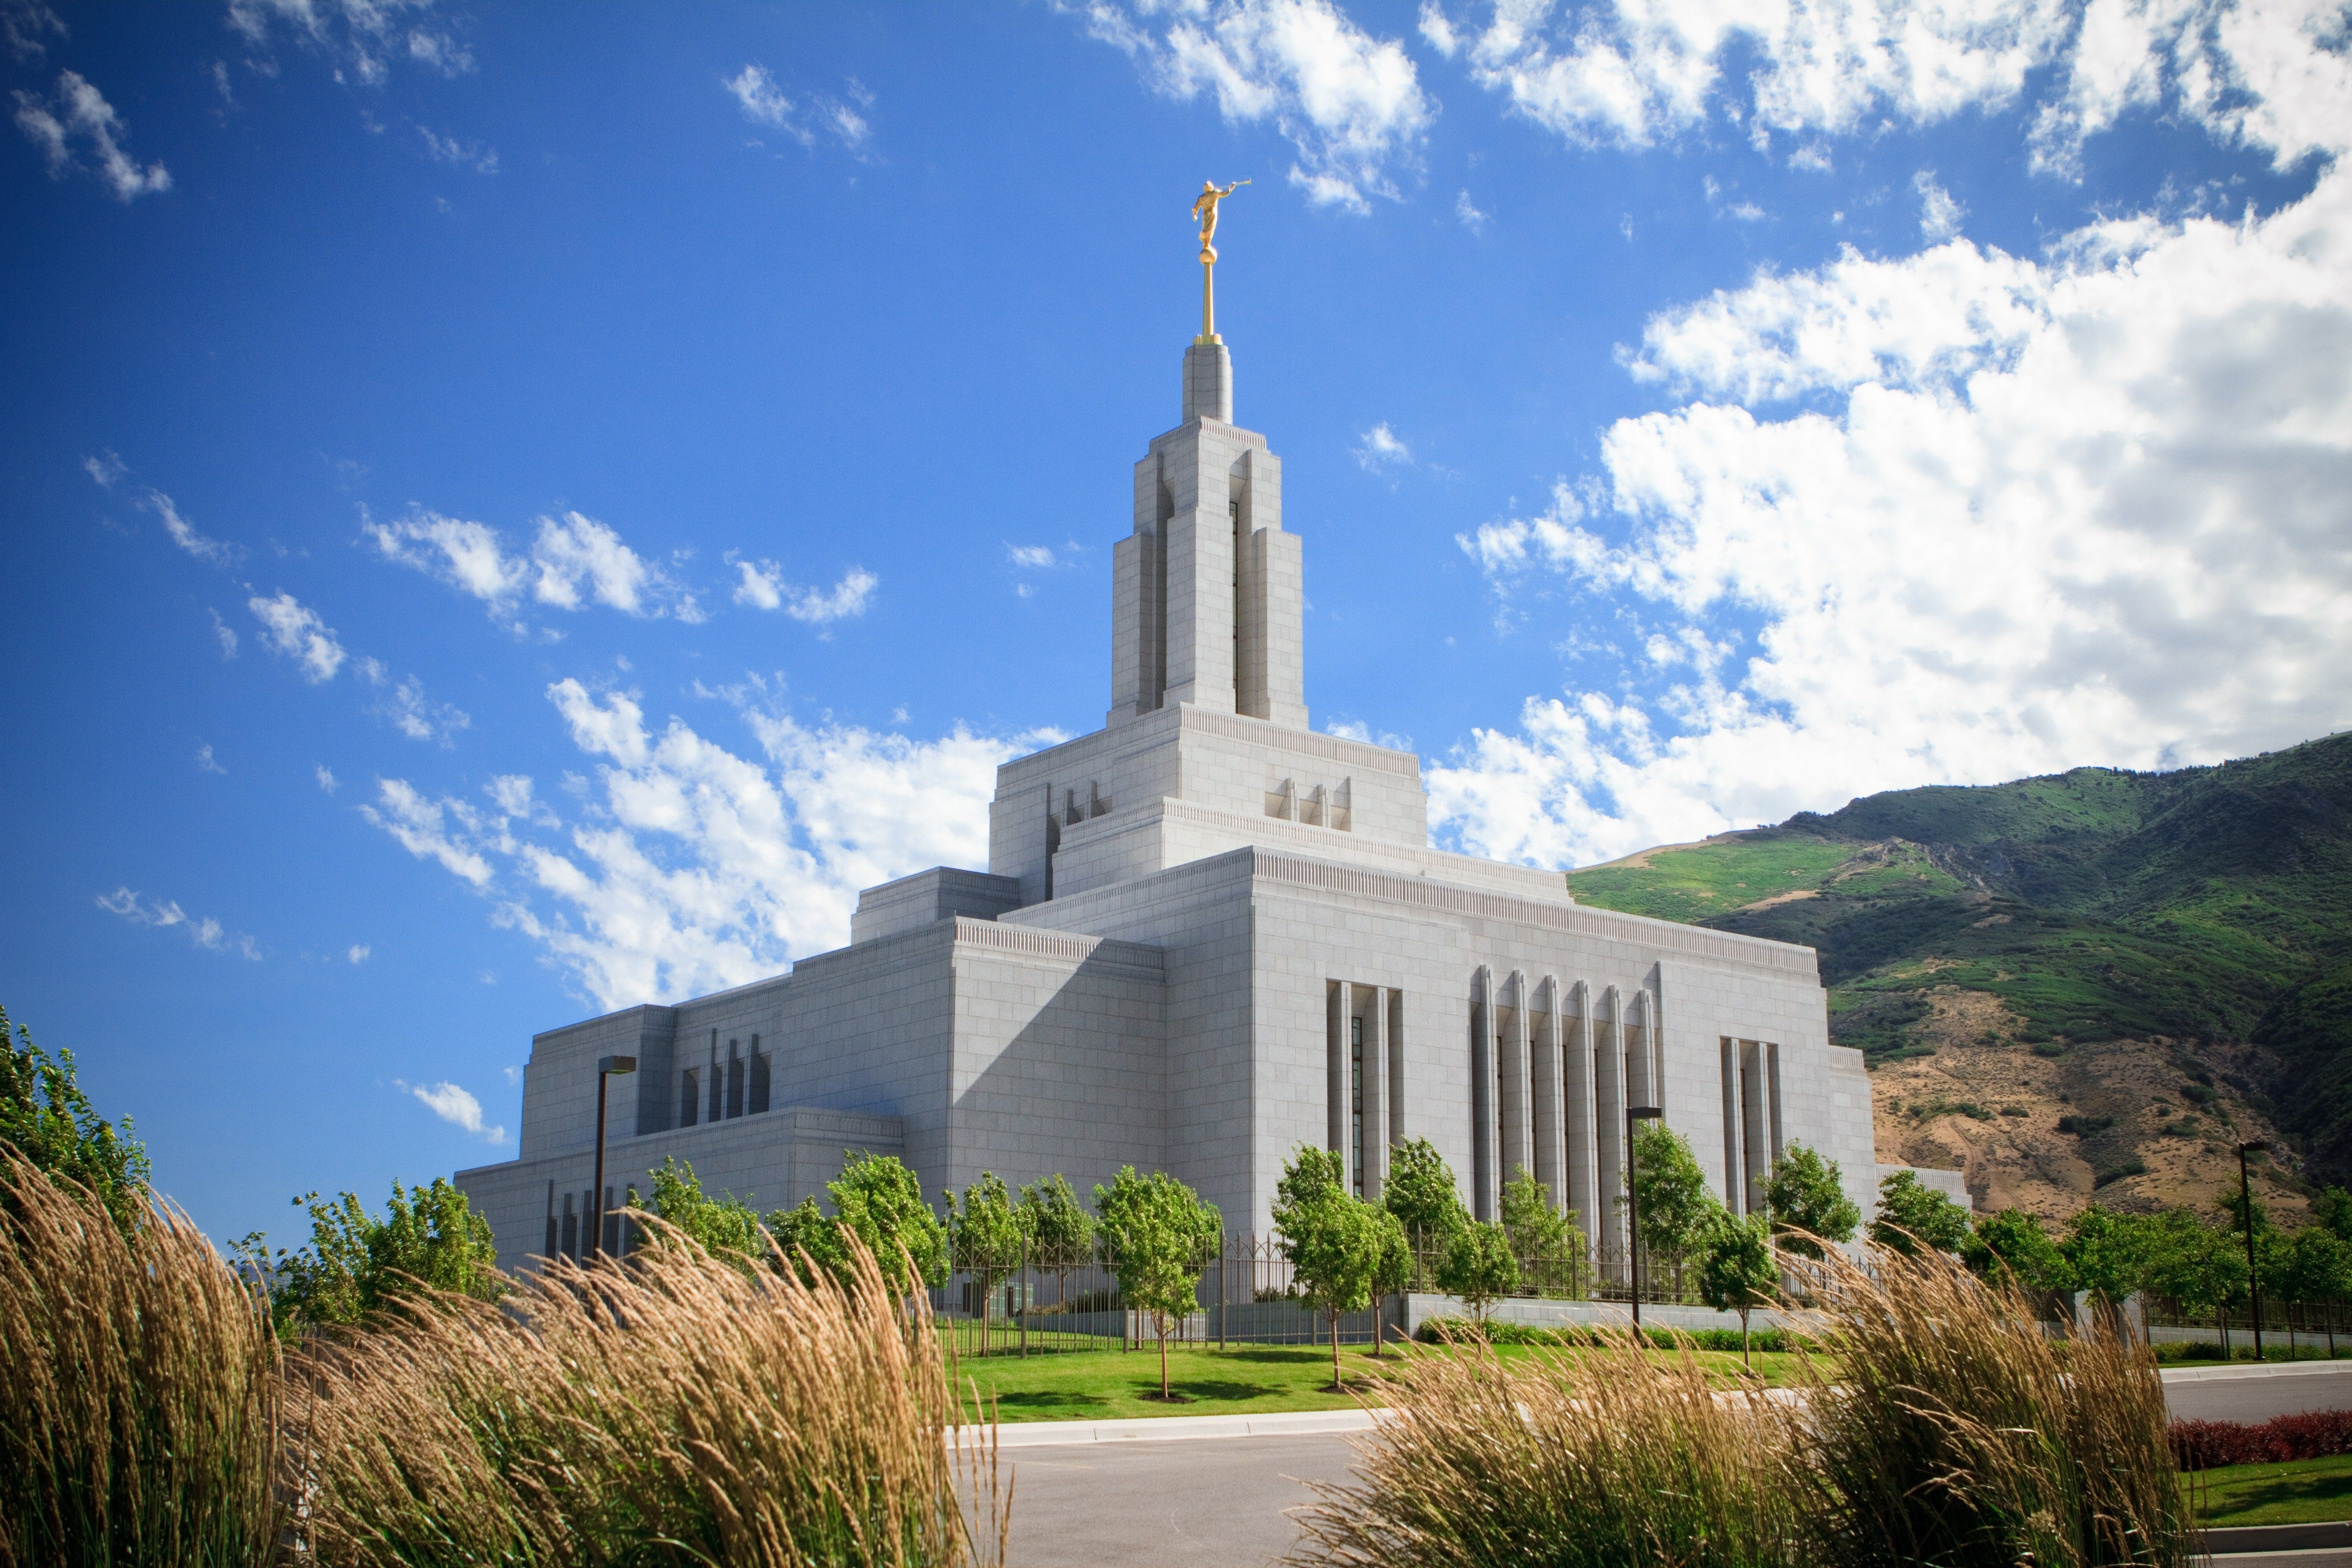 The Draper Utah Temple and grounds.